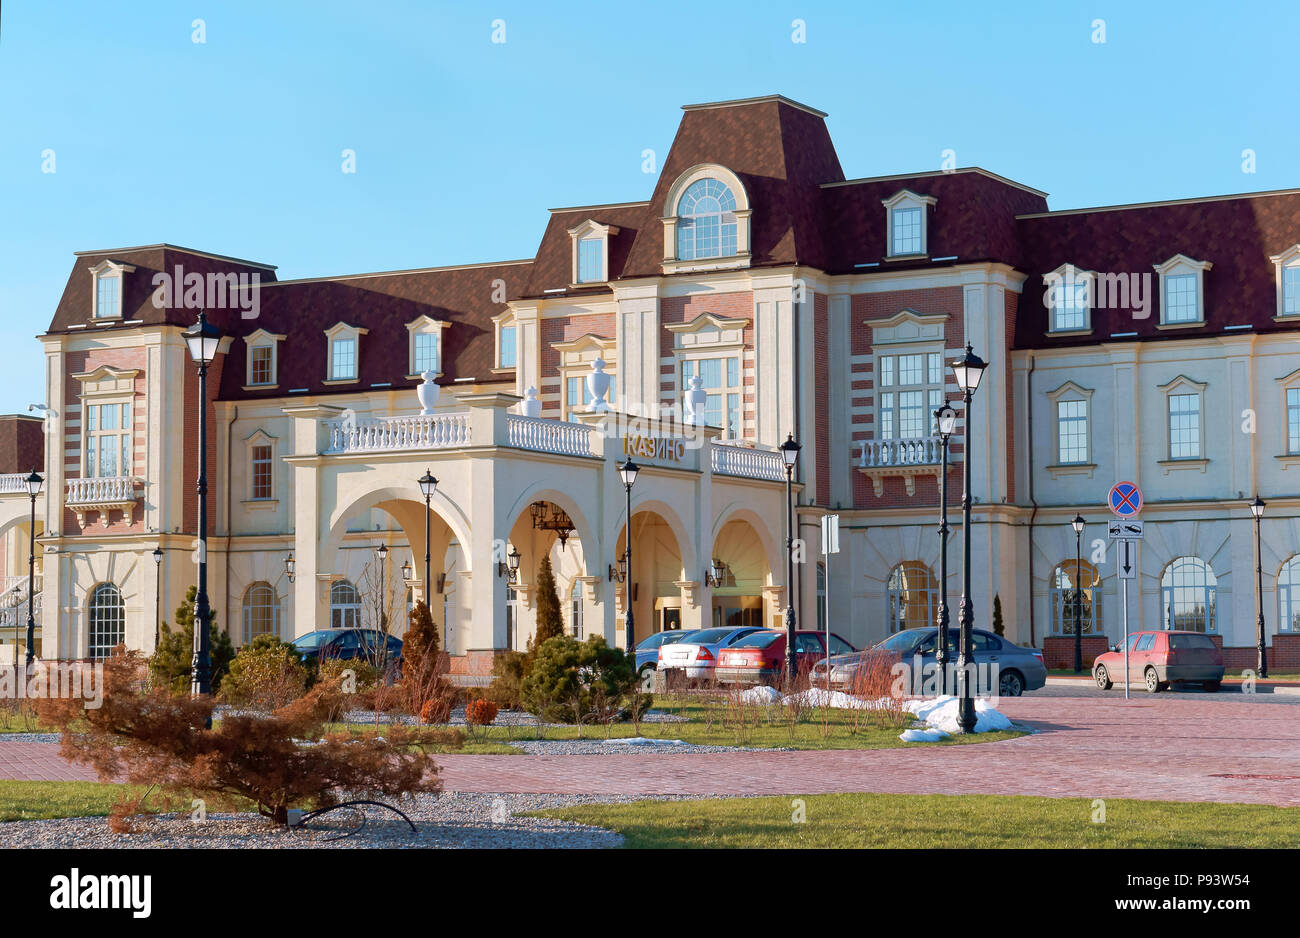 Kaliningrad casino my sims 2 for ds game keeps freezing